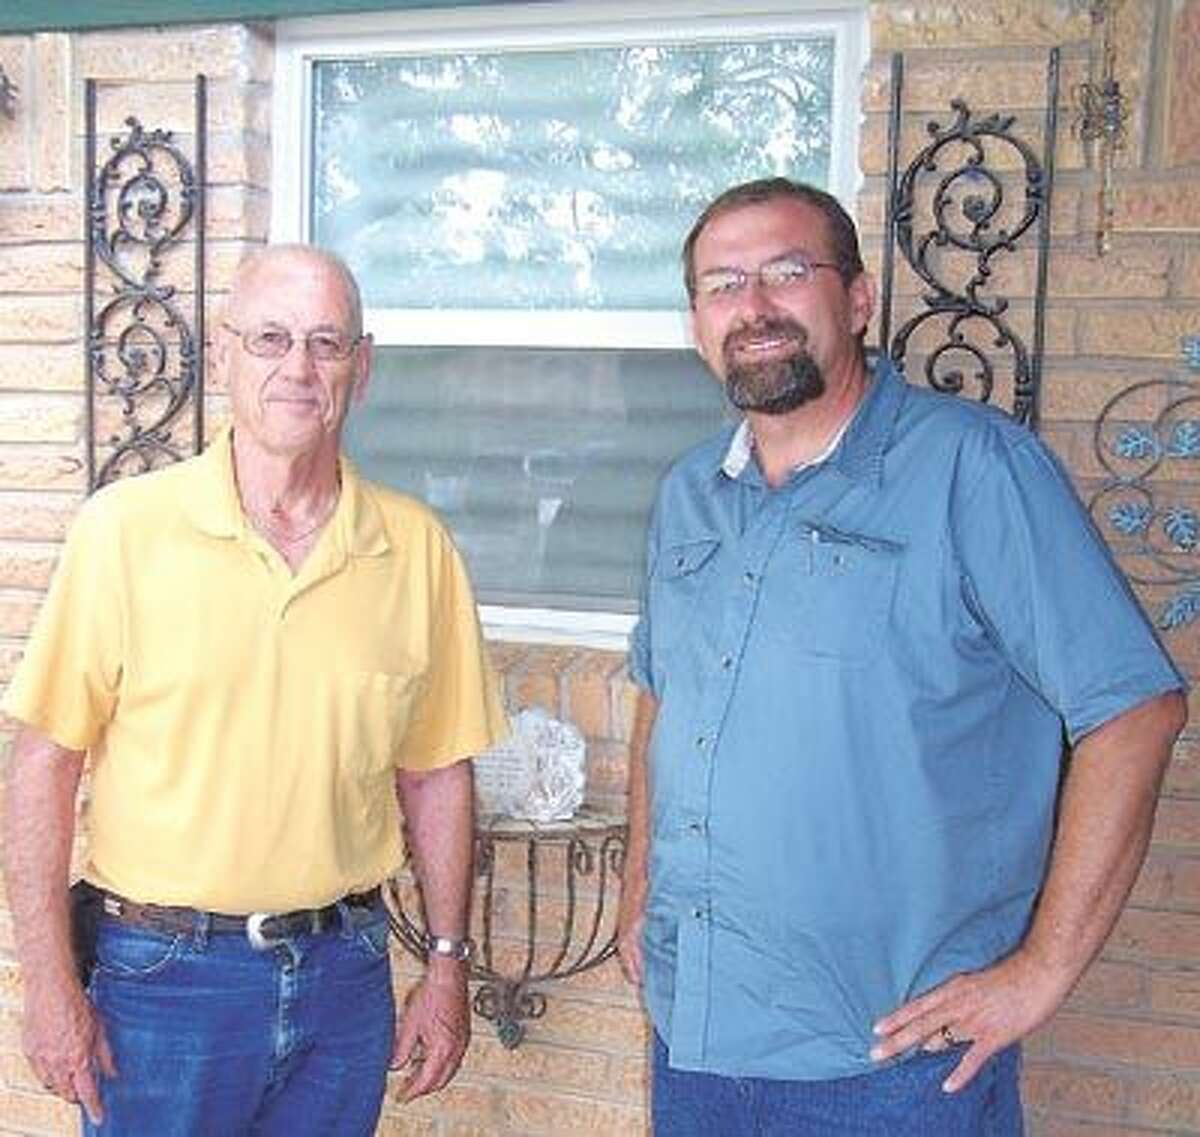 Midland homeowner Stan Sartain (left) says he and his wife really enjoy their home's insulated windows, installed by Neil Letkeman of Lifetime Windows. Call Neil at 580-8125 for a free estimate.